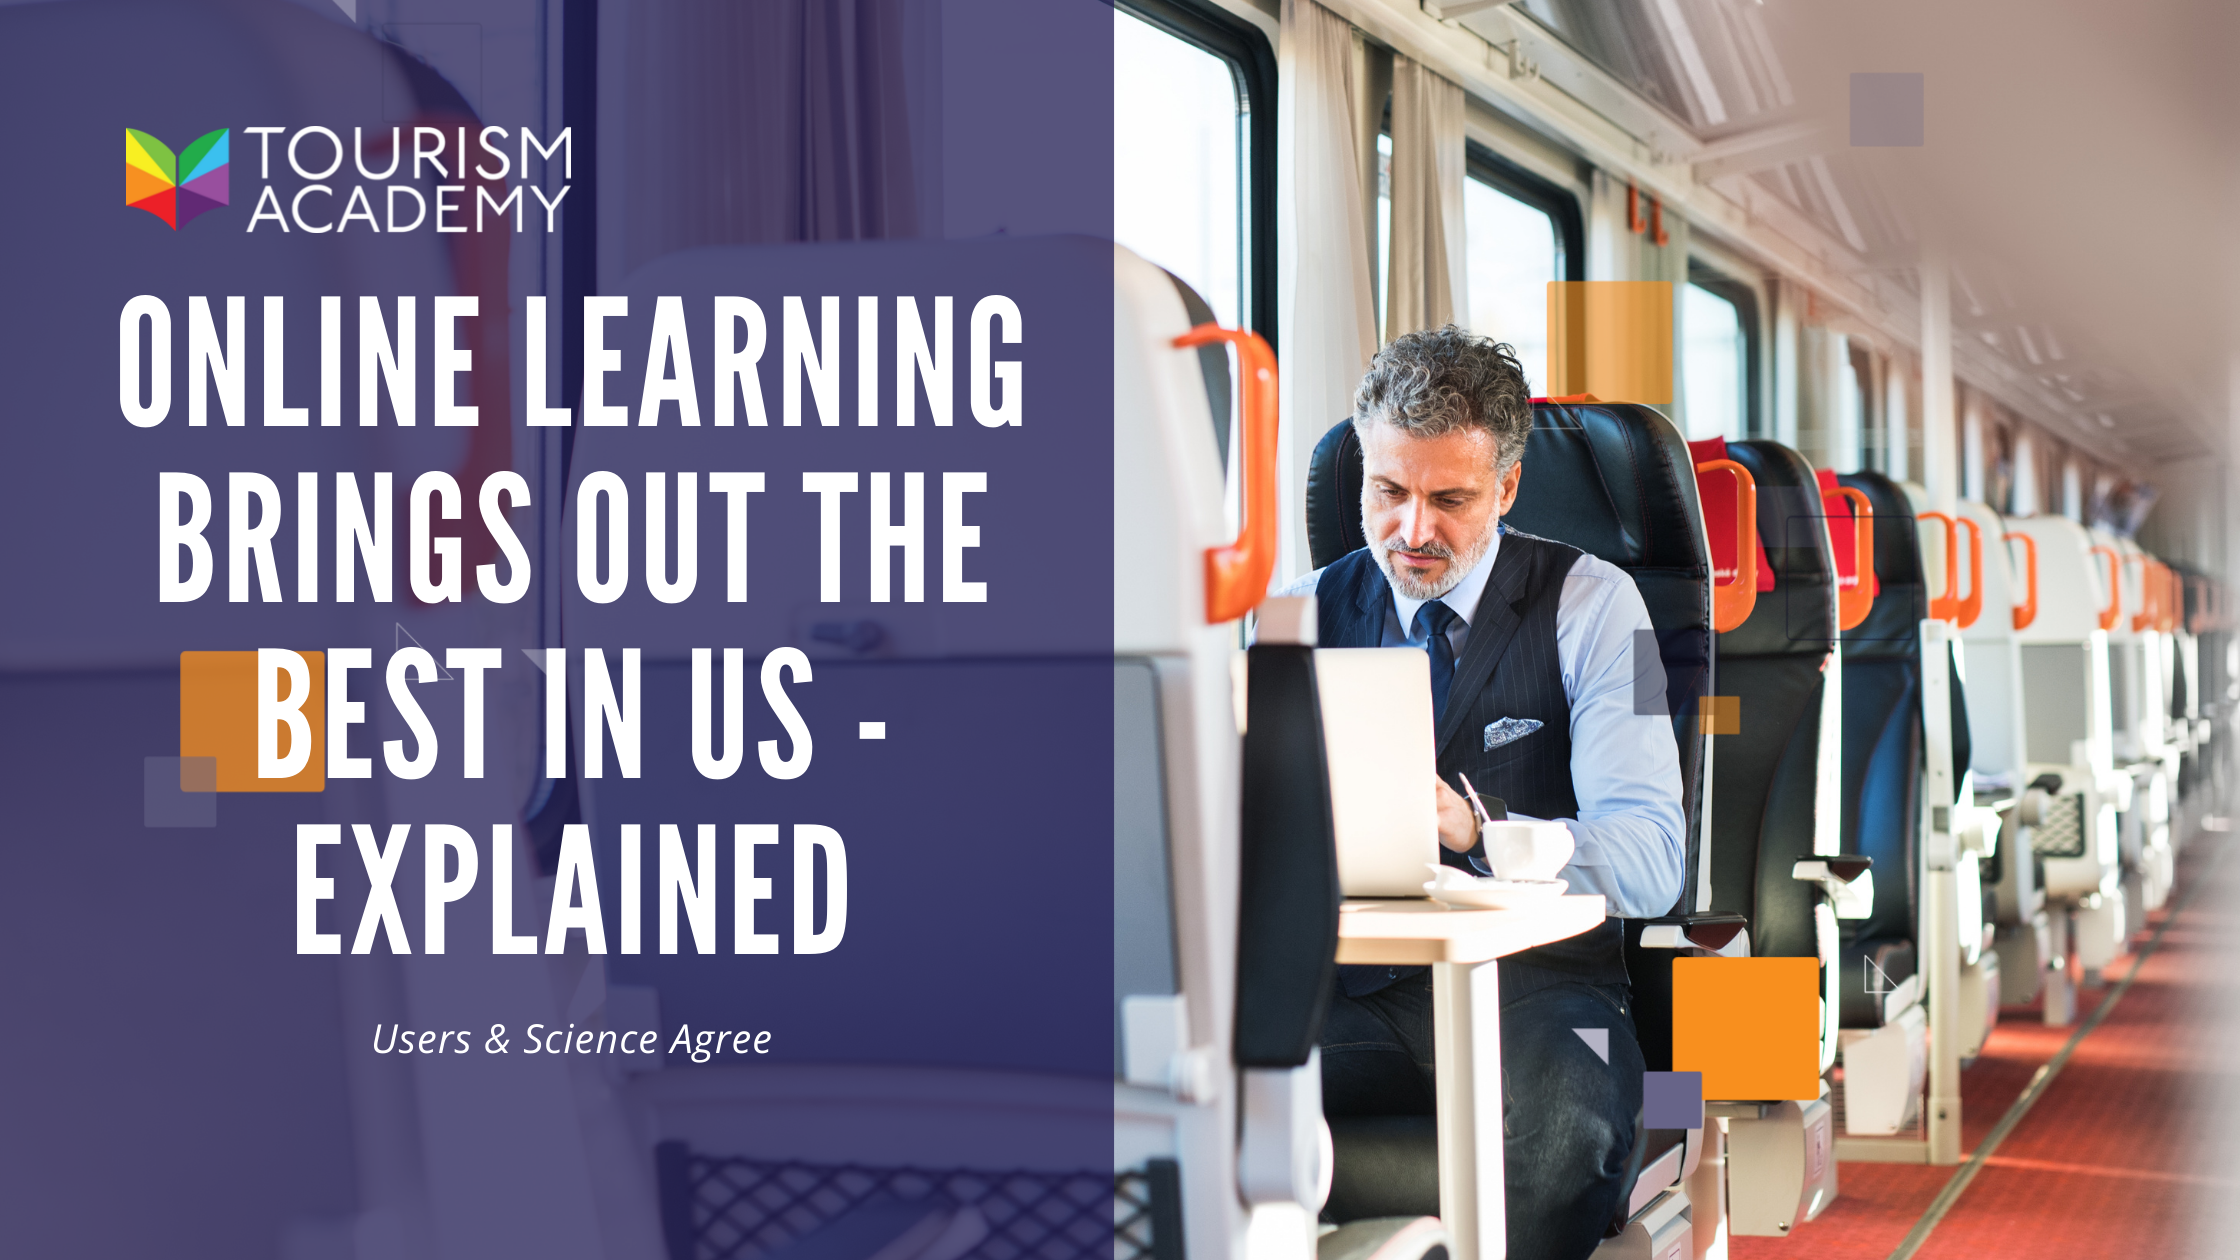 Online Learning Brings Out the Best in Us - Explained